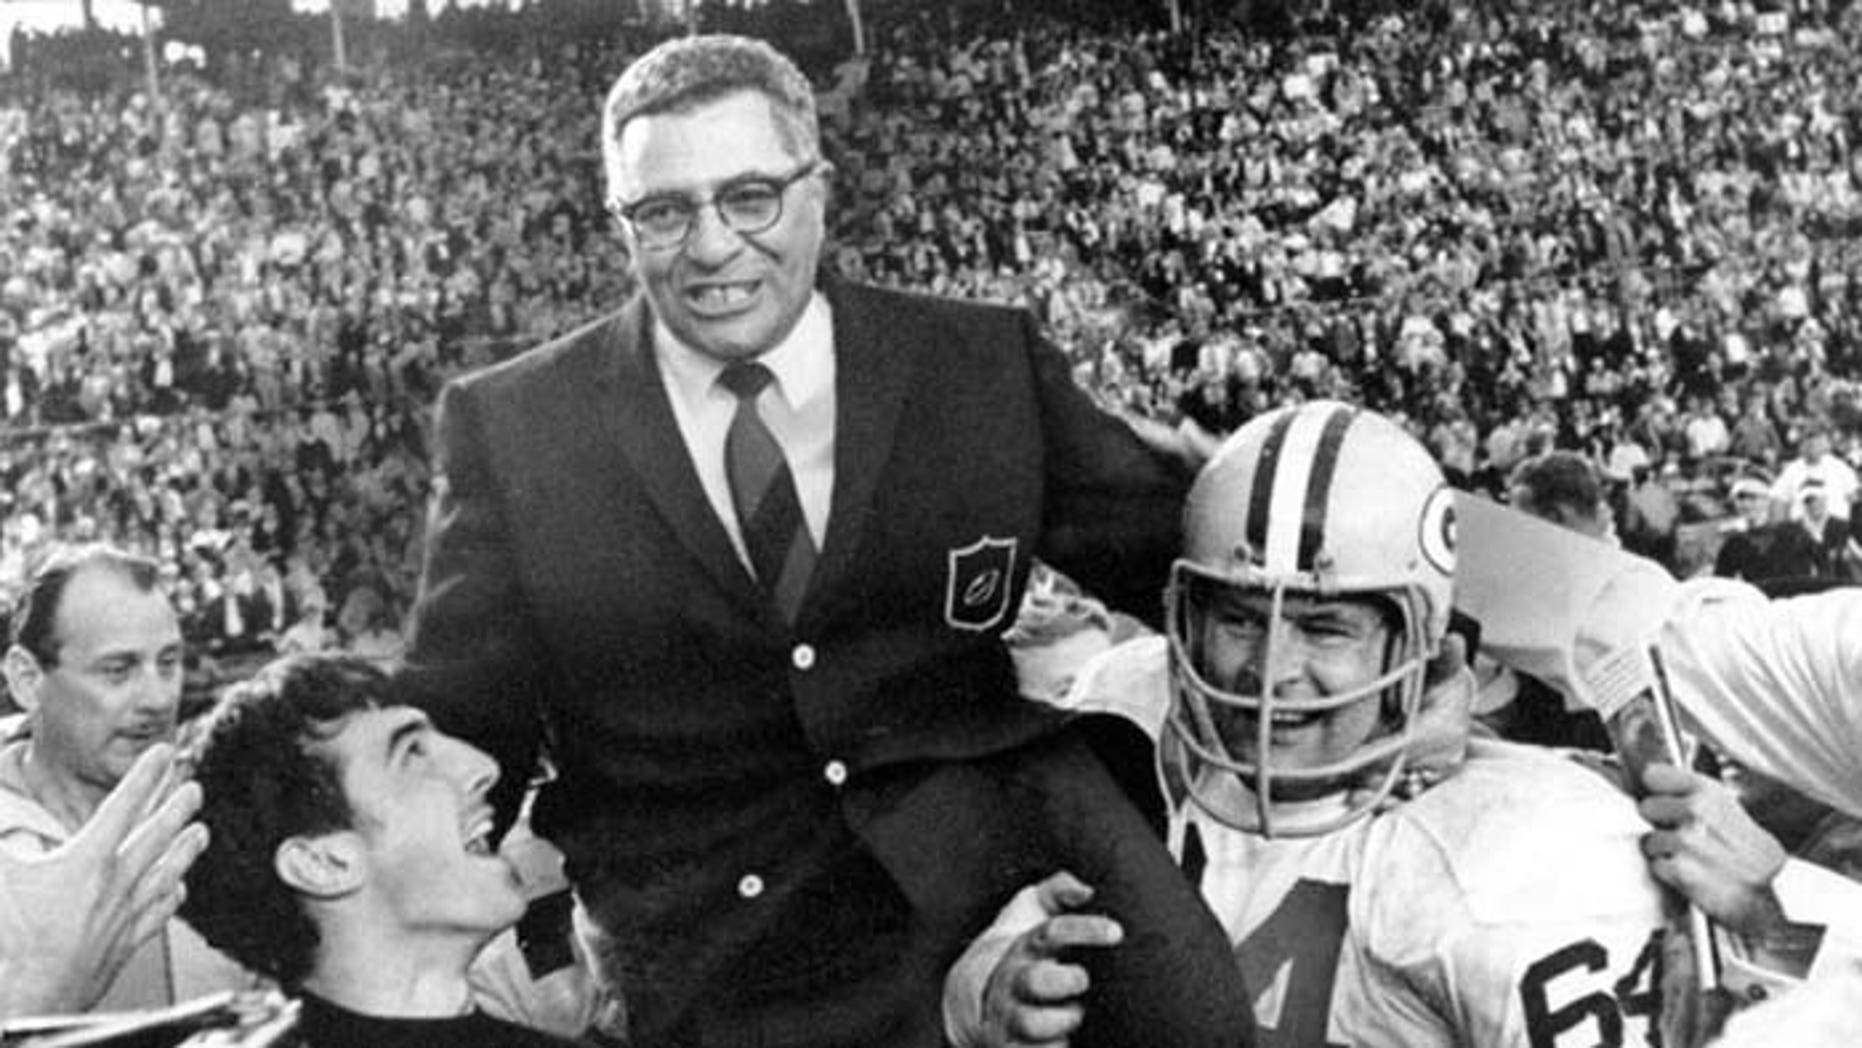 Legendary Packers Coach Vince Lombardi would win the Super Bowl again in 1968, but died just two years later. (AP)